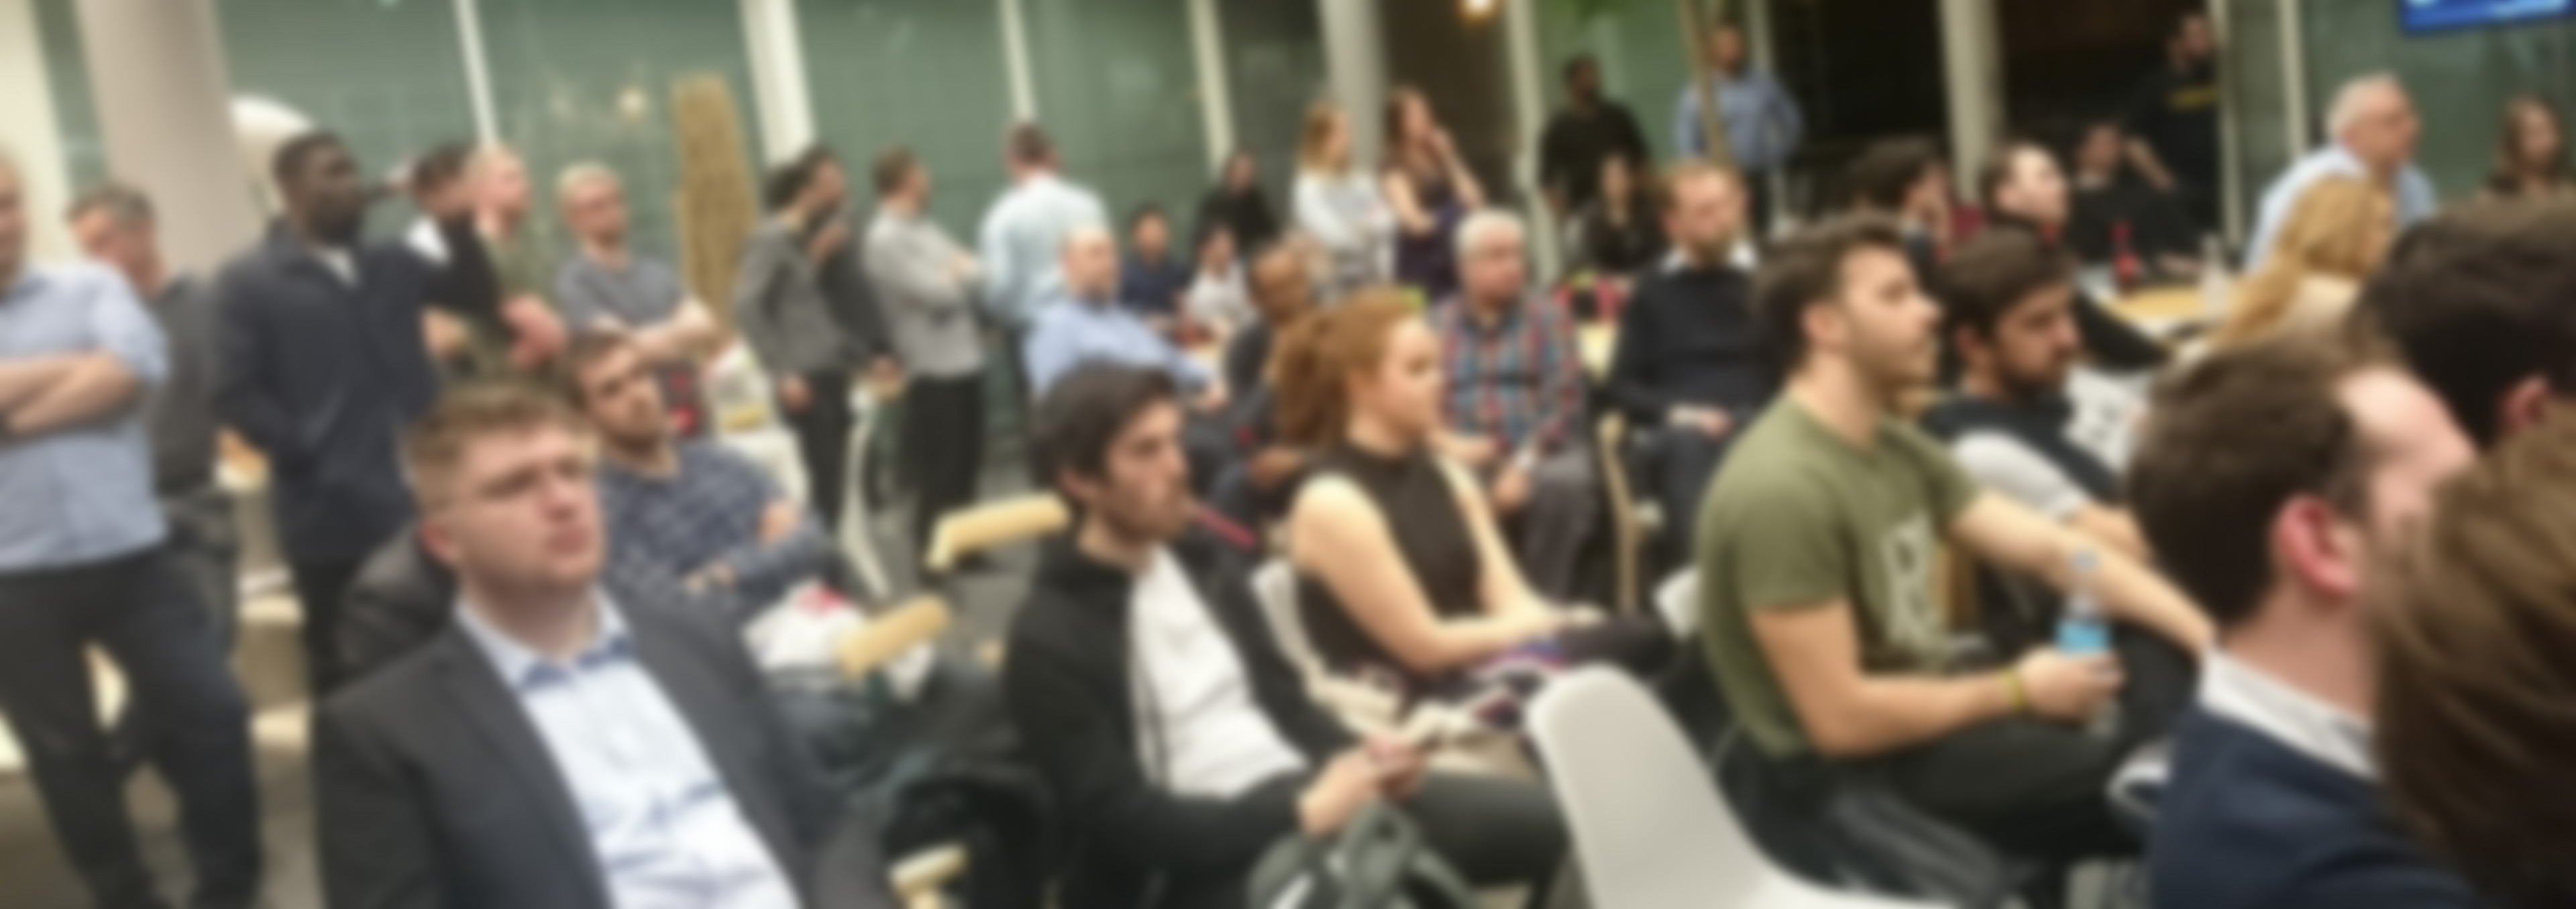 V ray user group london 01 blurred2